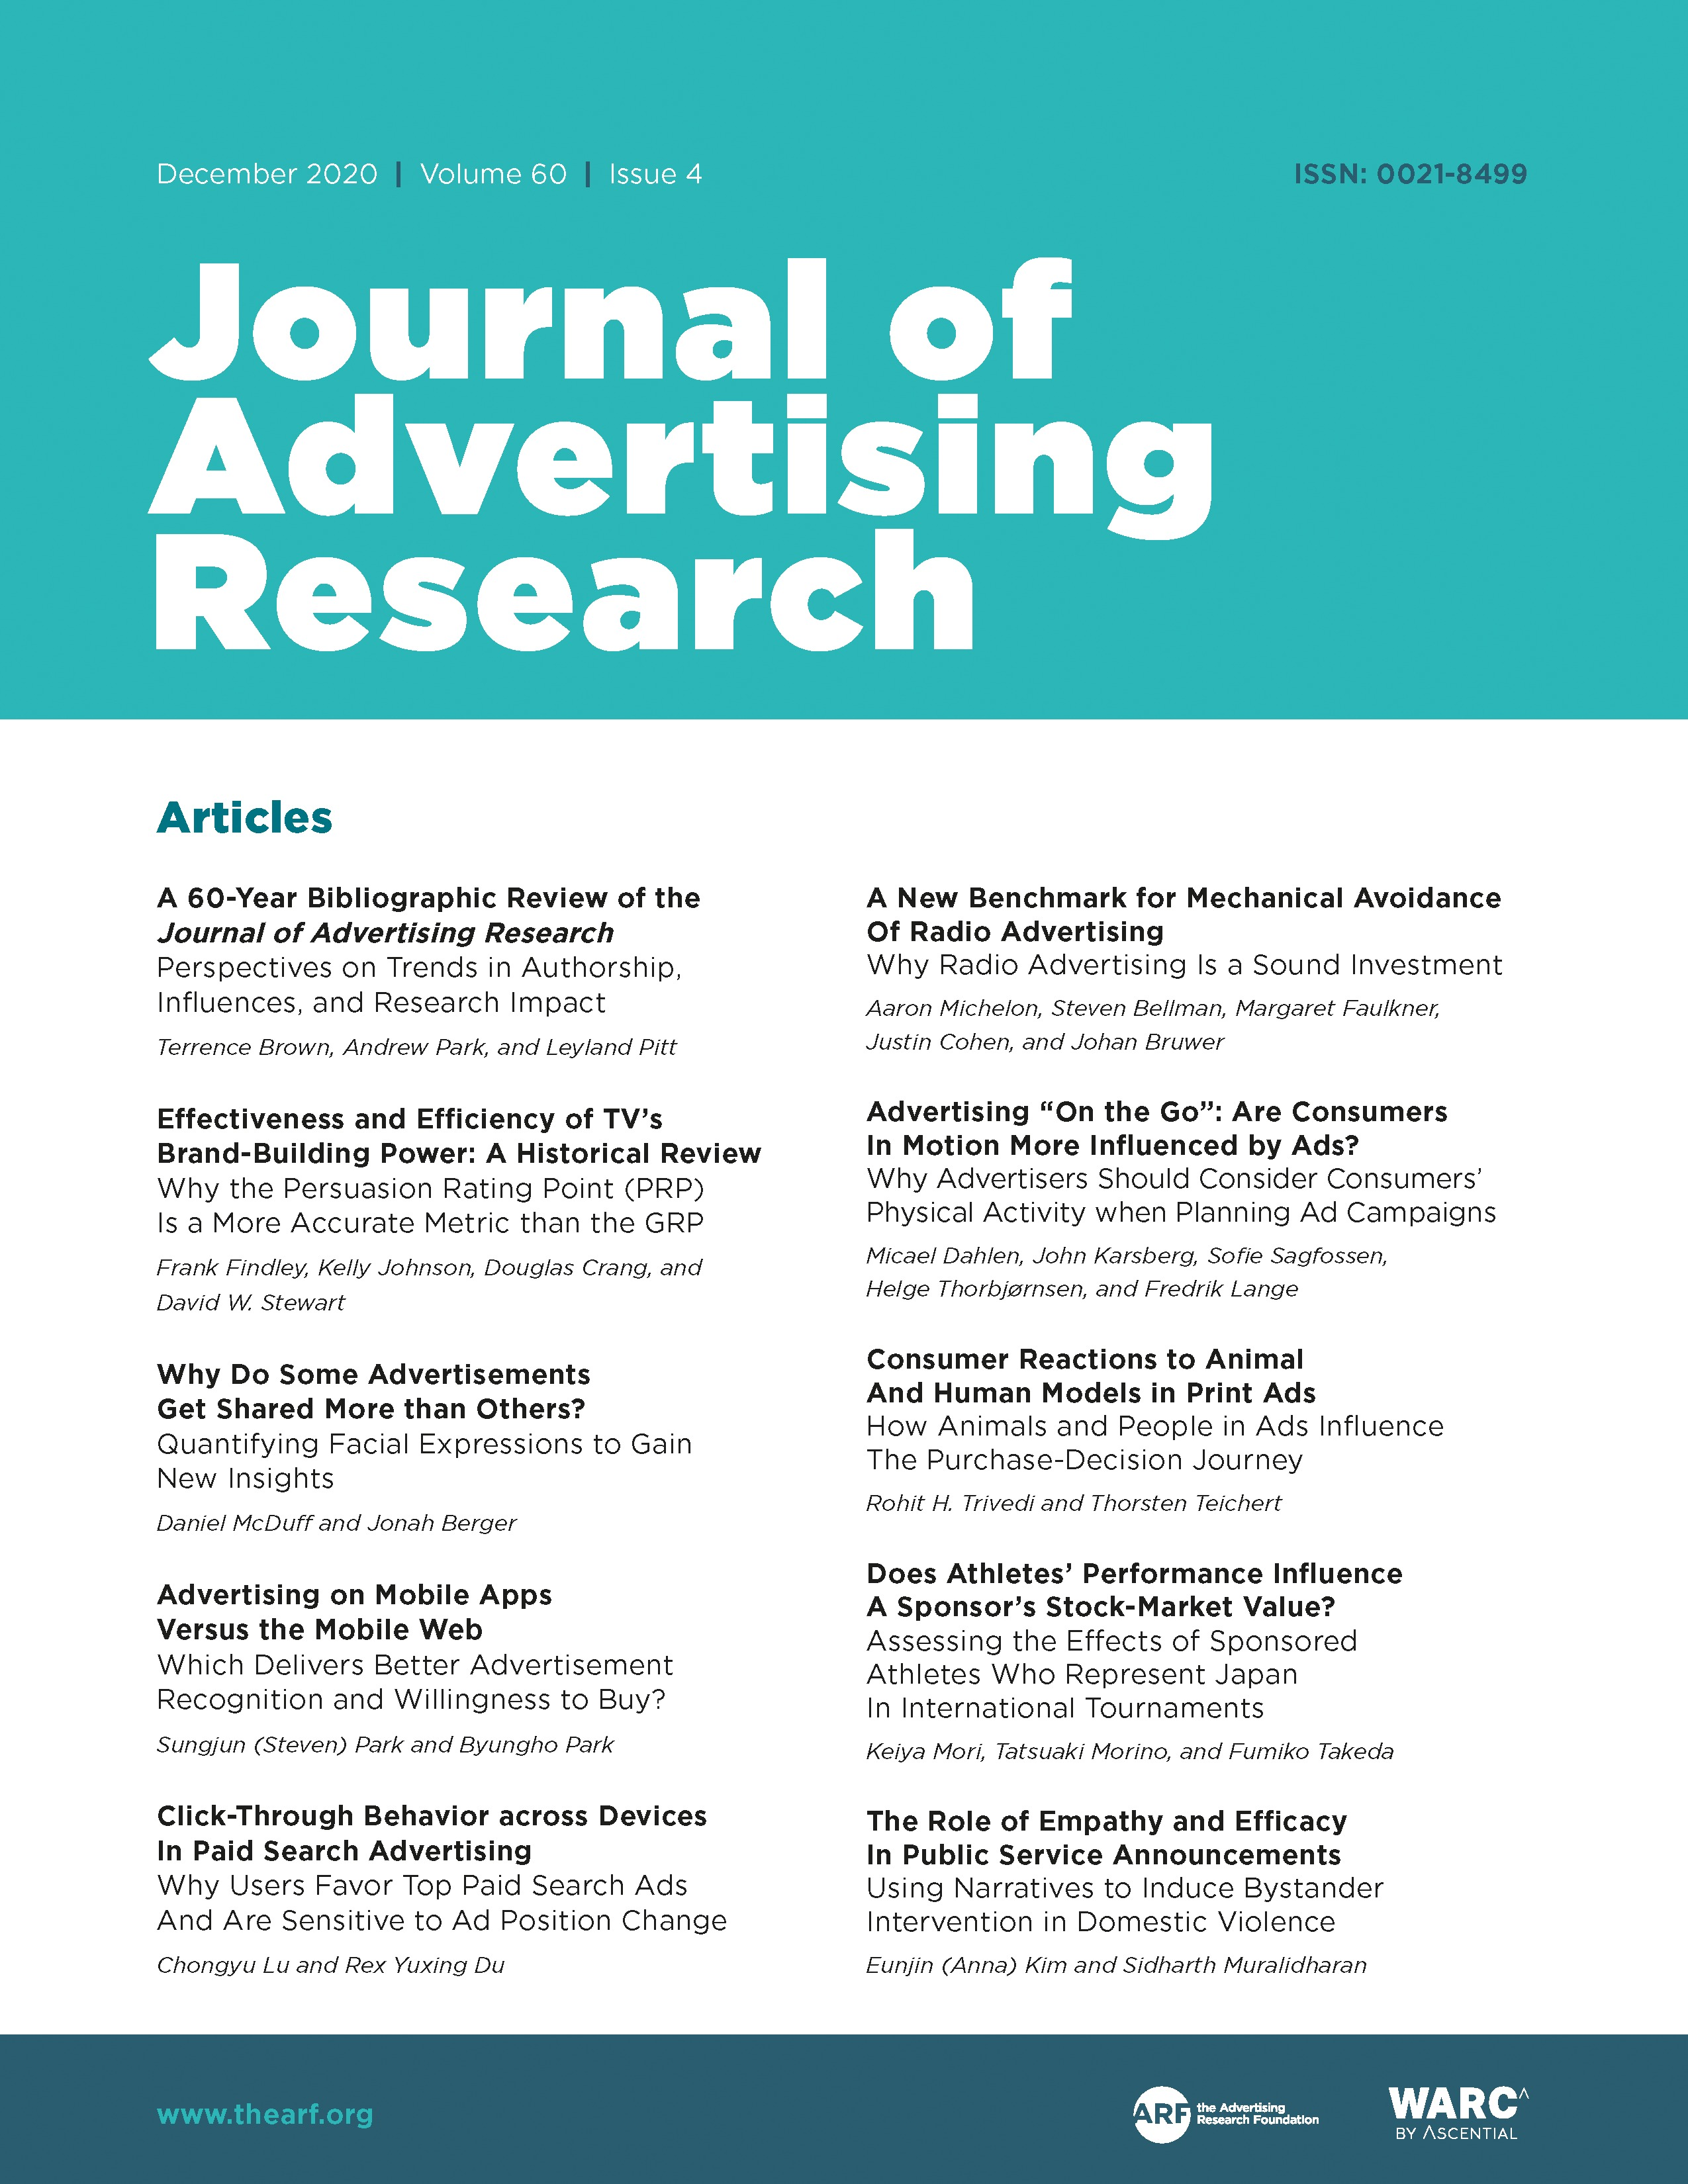 Advertising on Mobile Apps Versus the Mobile Web | the Journal of ...